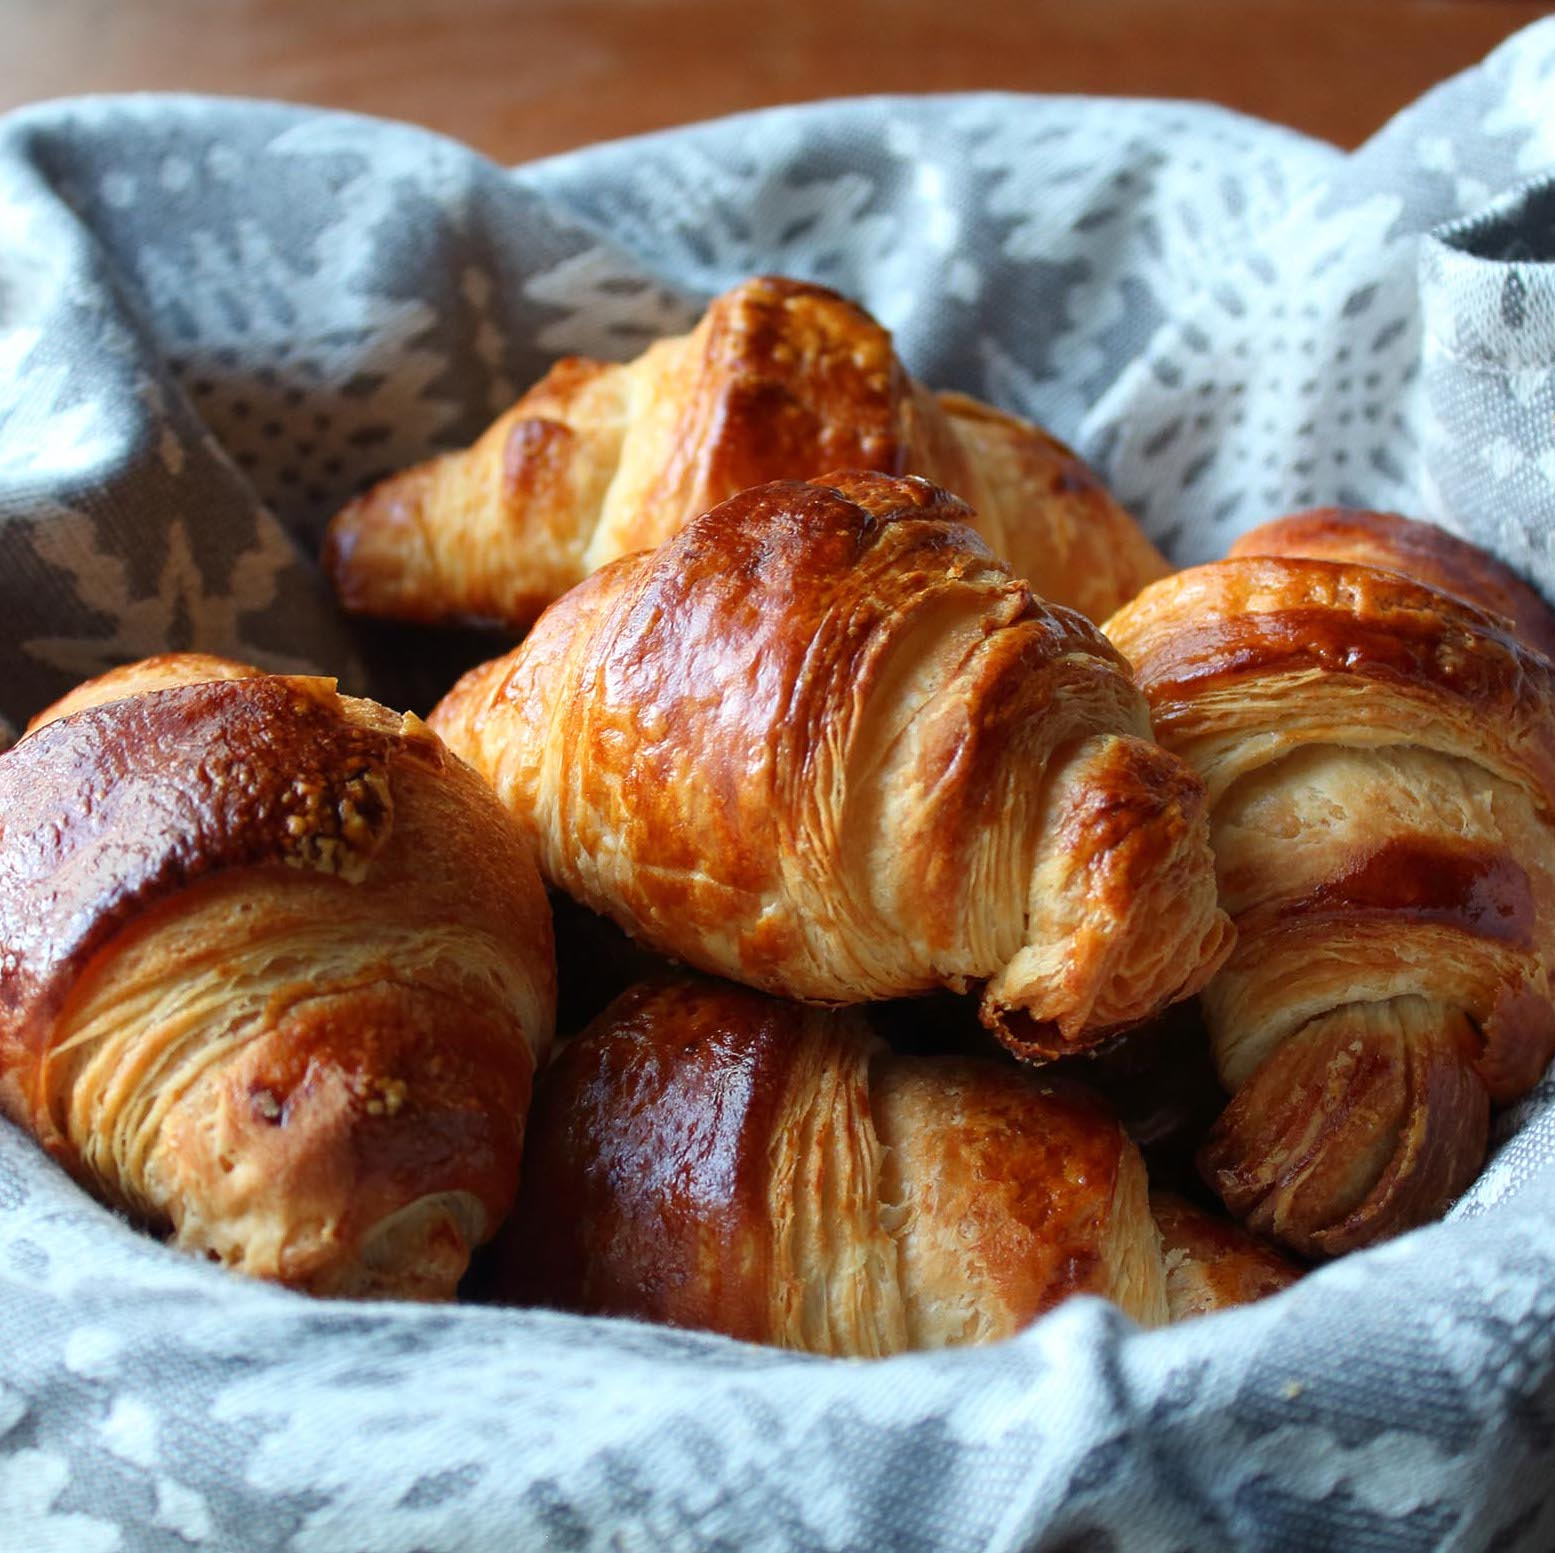 Croissants in a blue cloth-lined basket